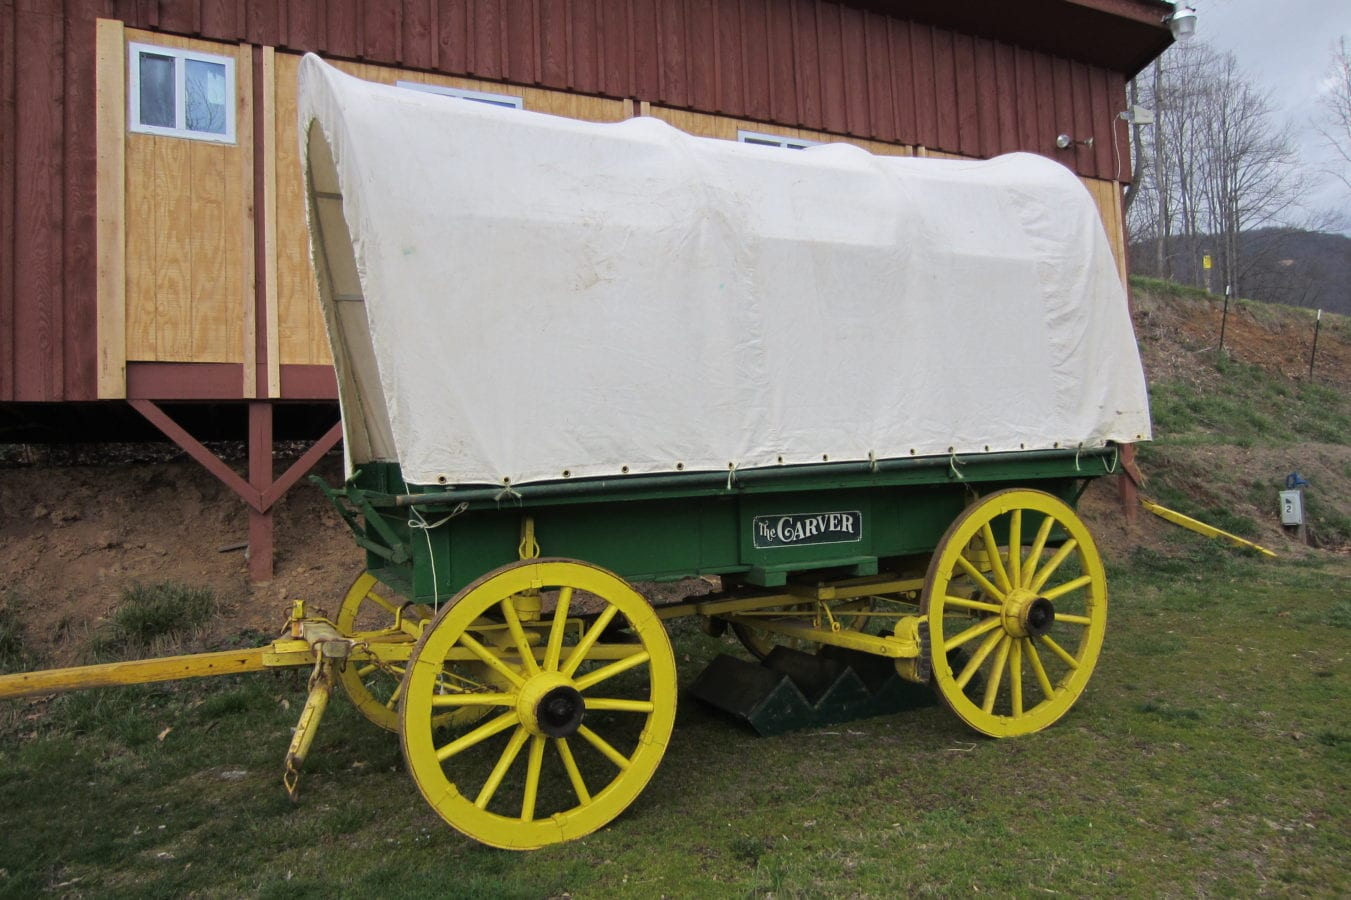 Garrett 1901 Carver Covered Wagon